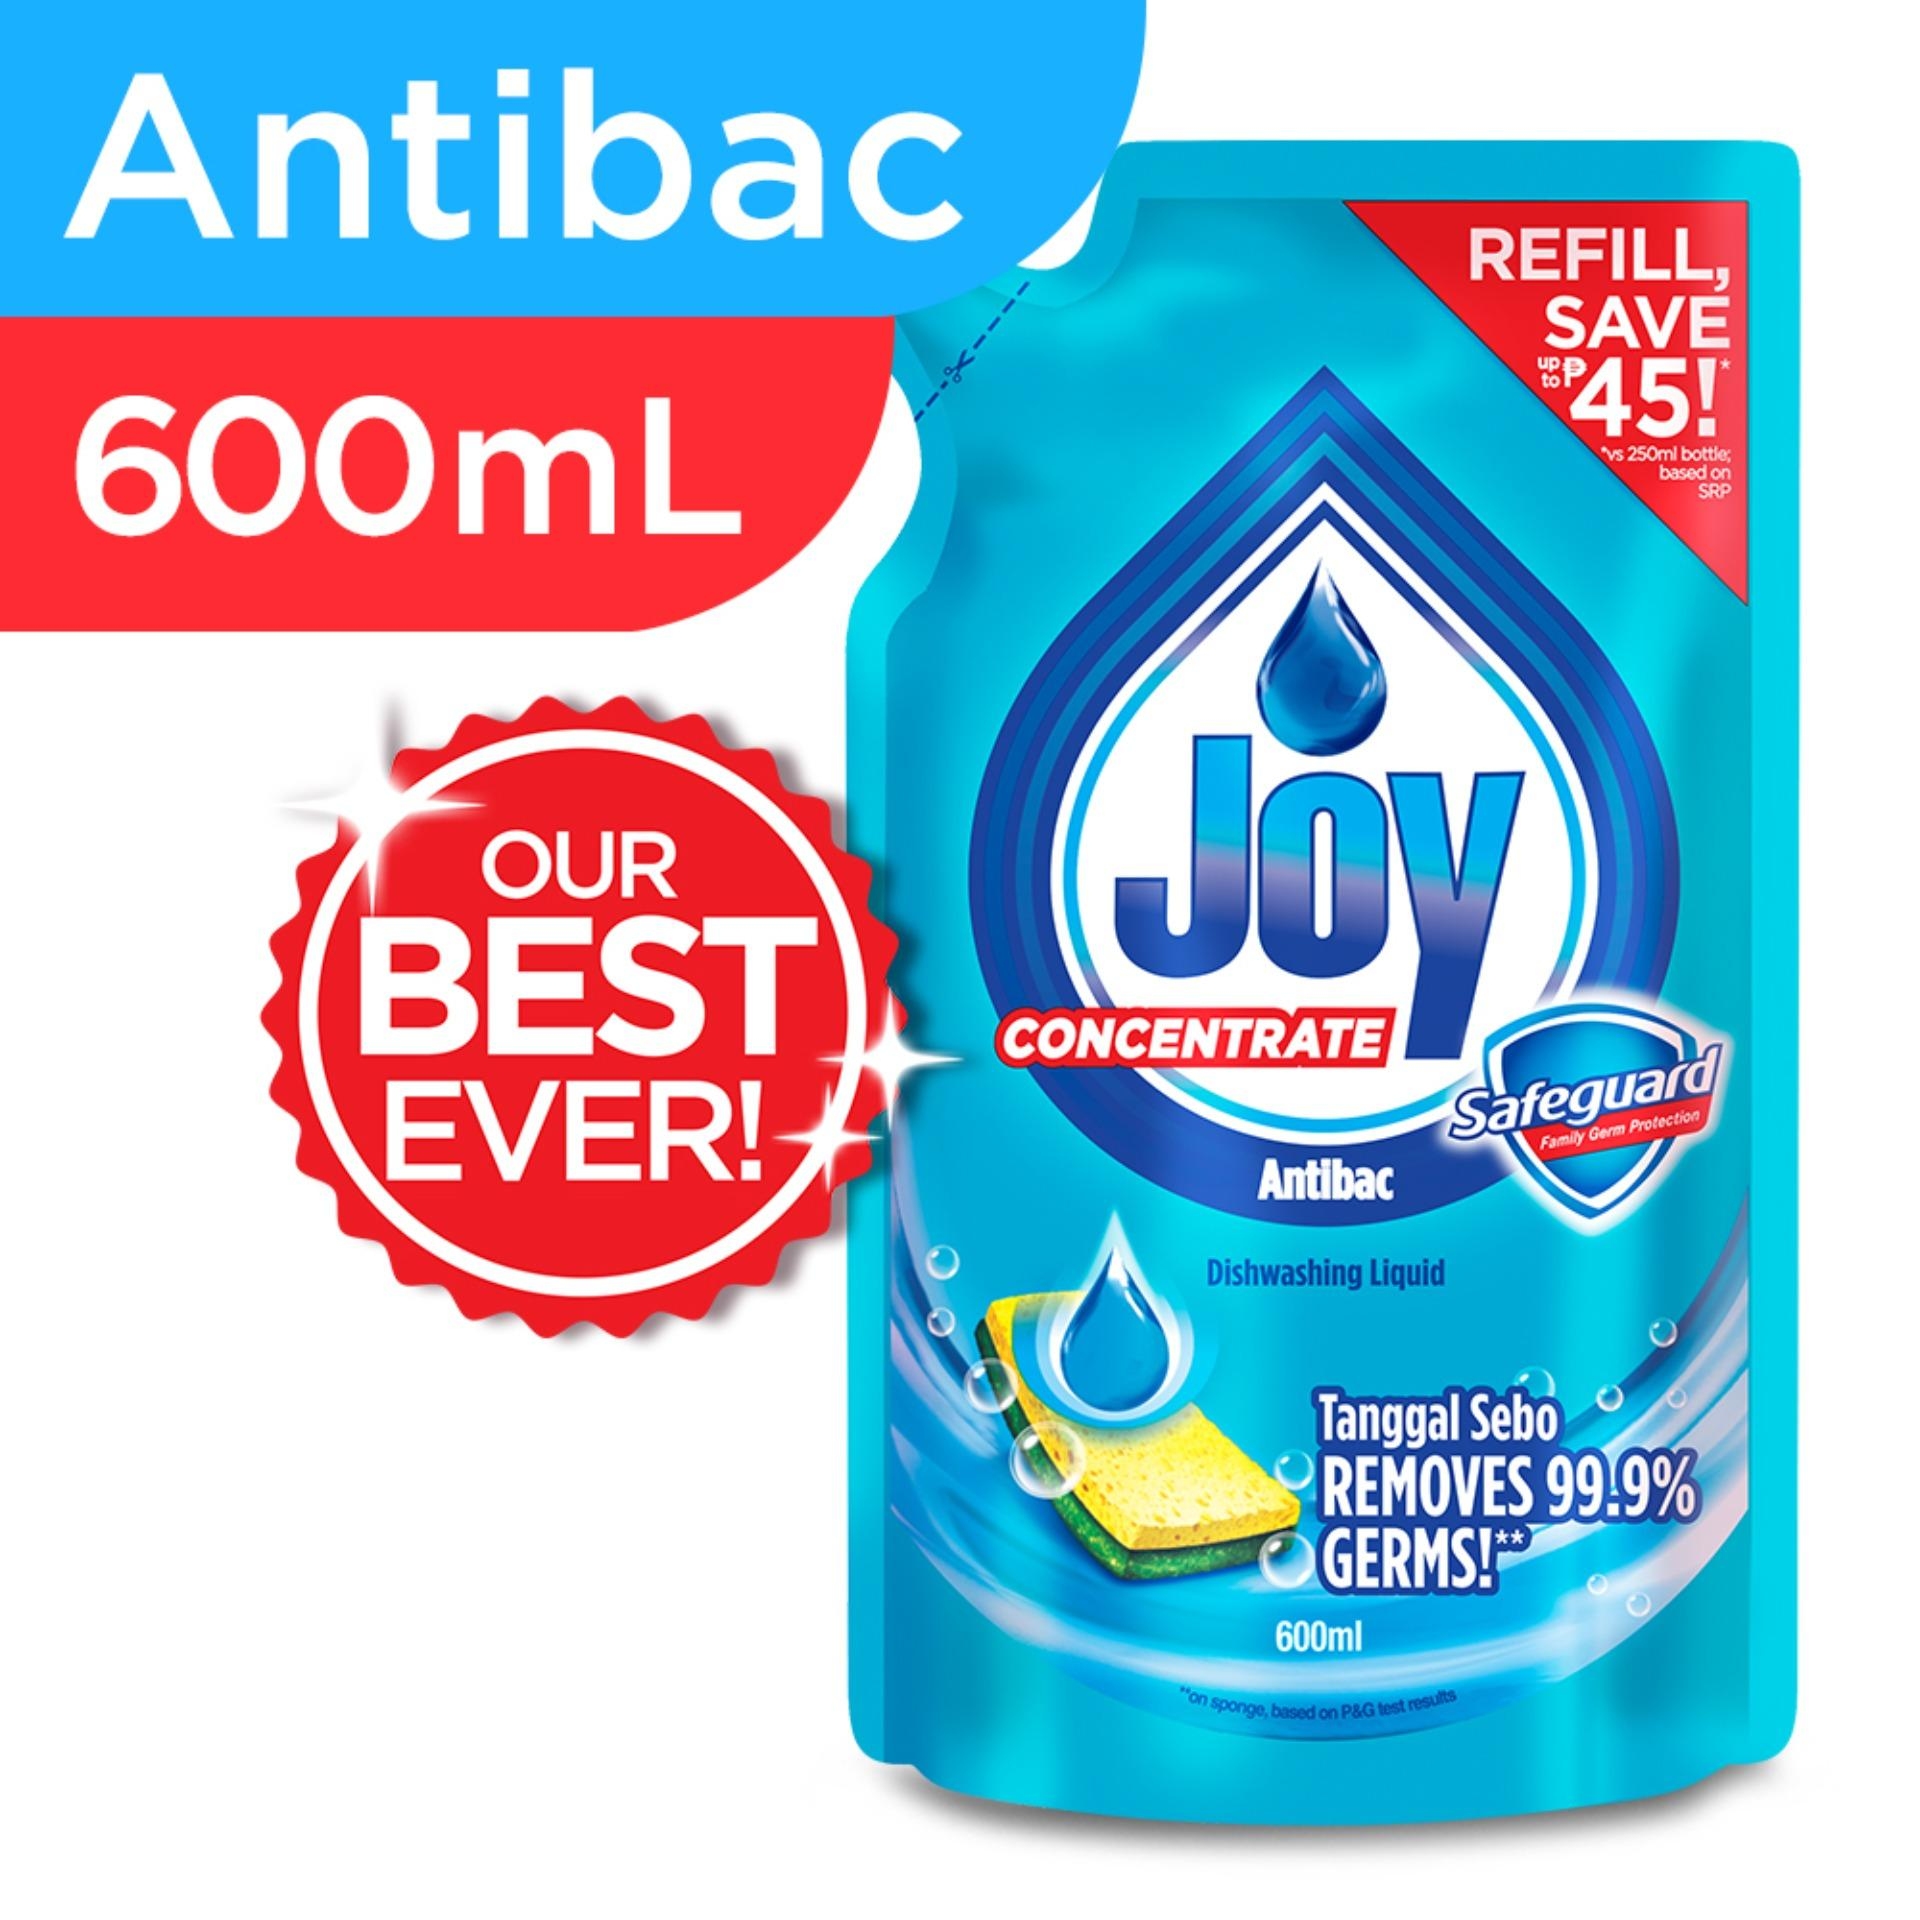 Joy Antibacterial Dishwashing Liquid Concentrate Safeguard 600mL